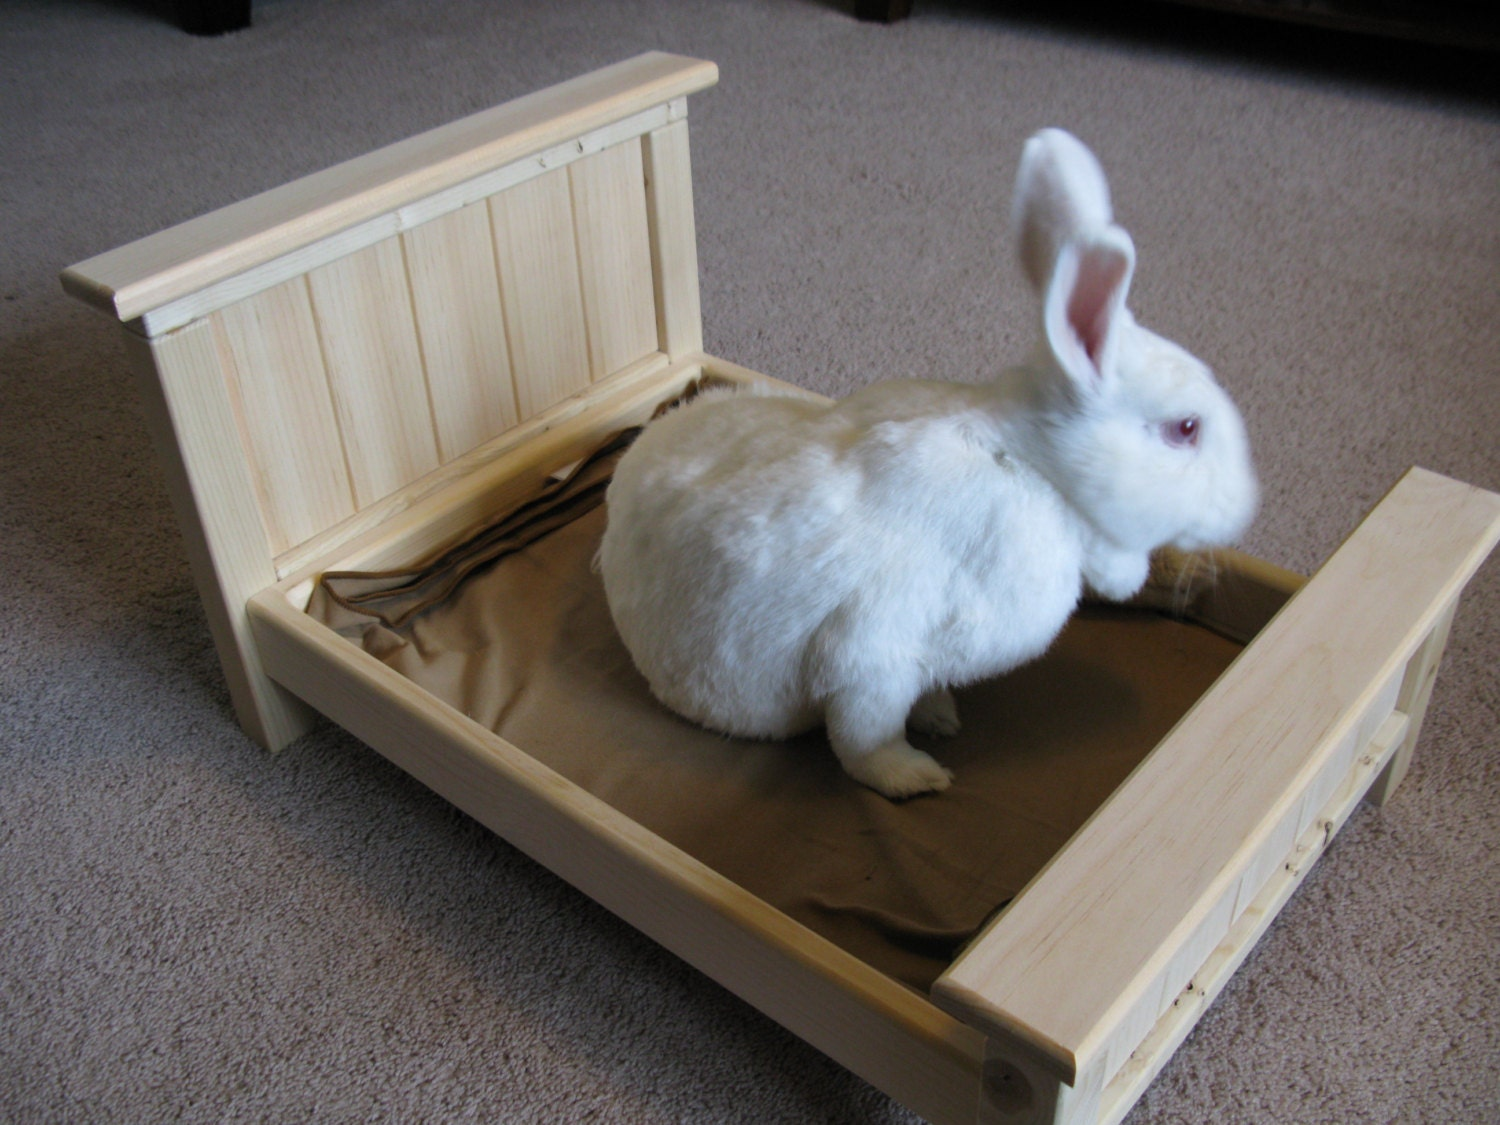 Flat Beds Chesterfield Upholstered Full Over Full Grey Bunk Bed Bunny Rabbit Small